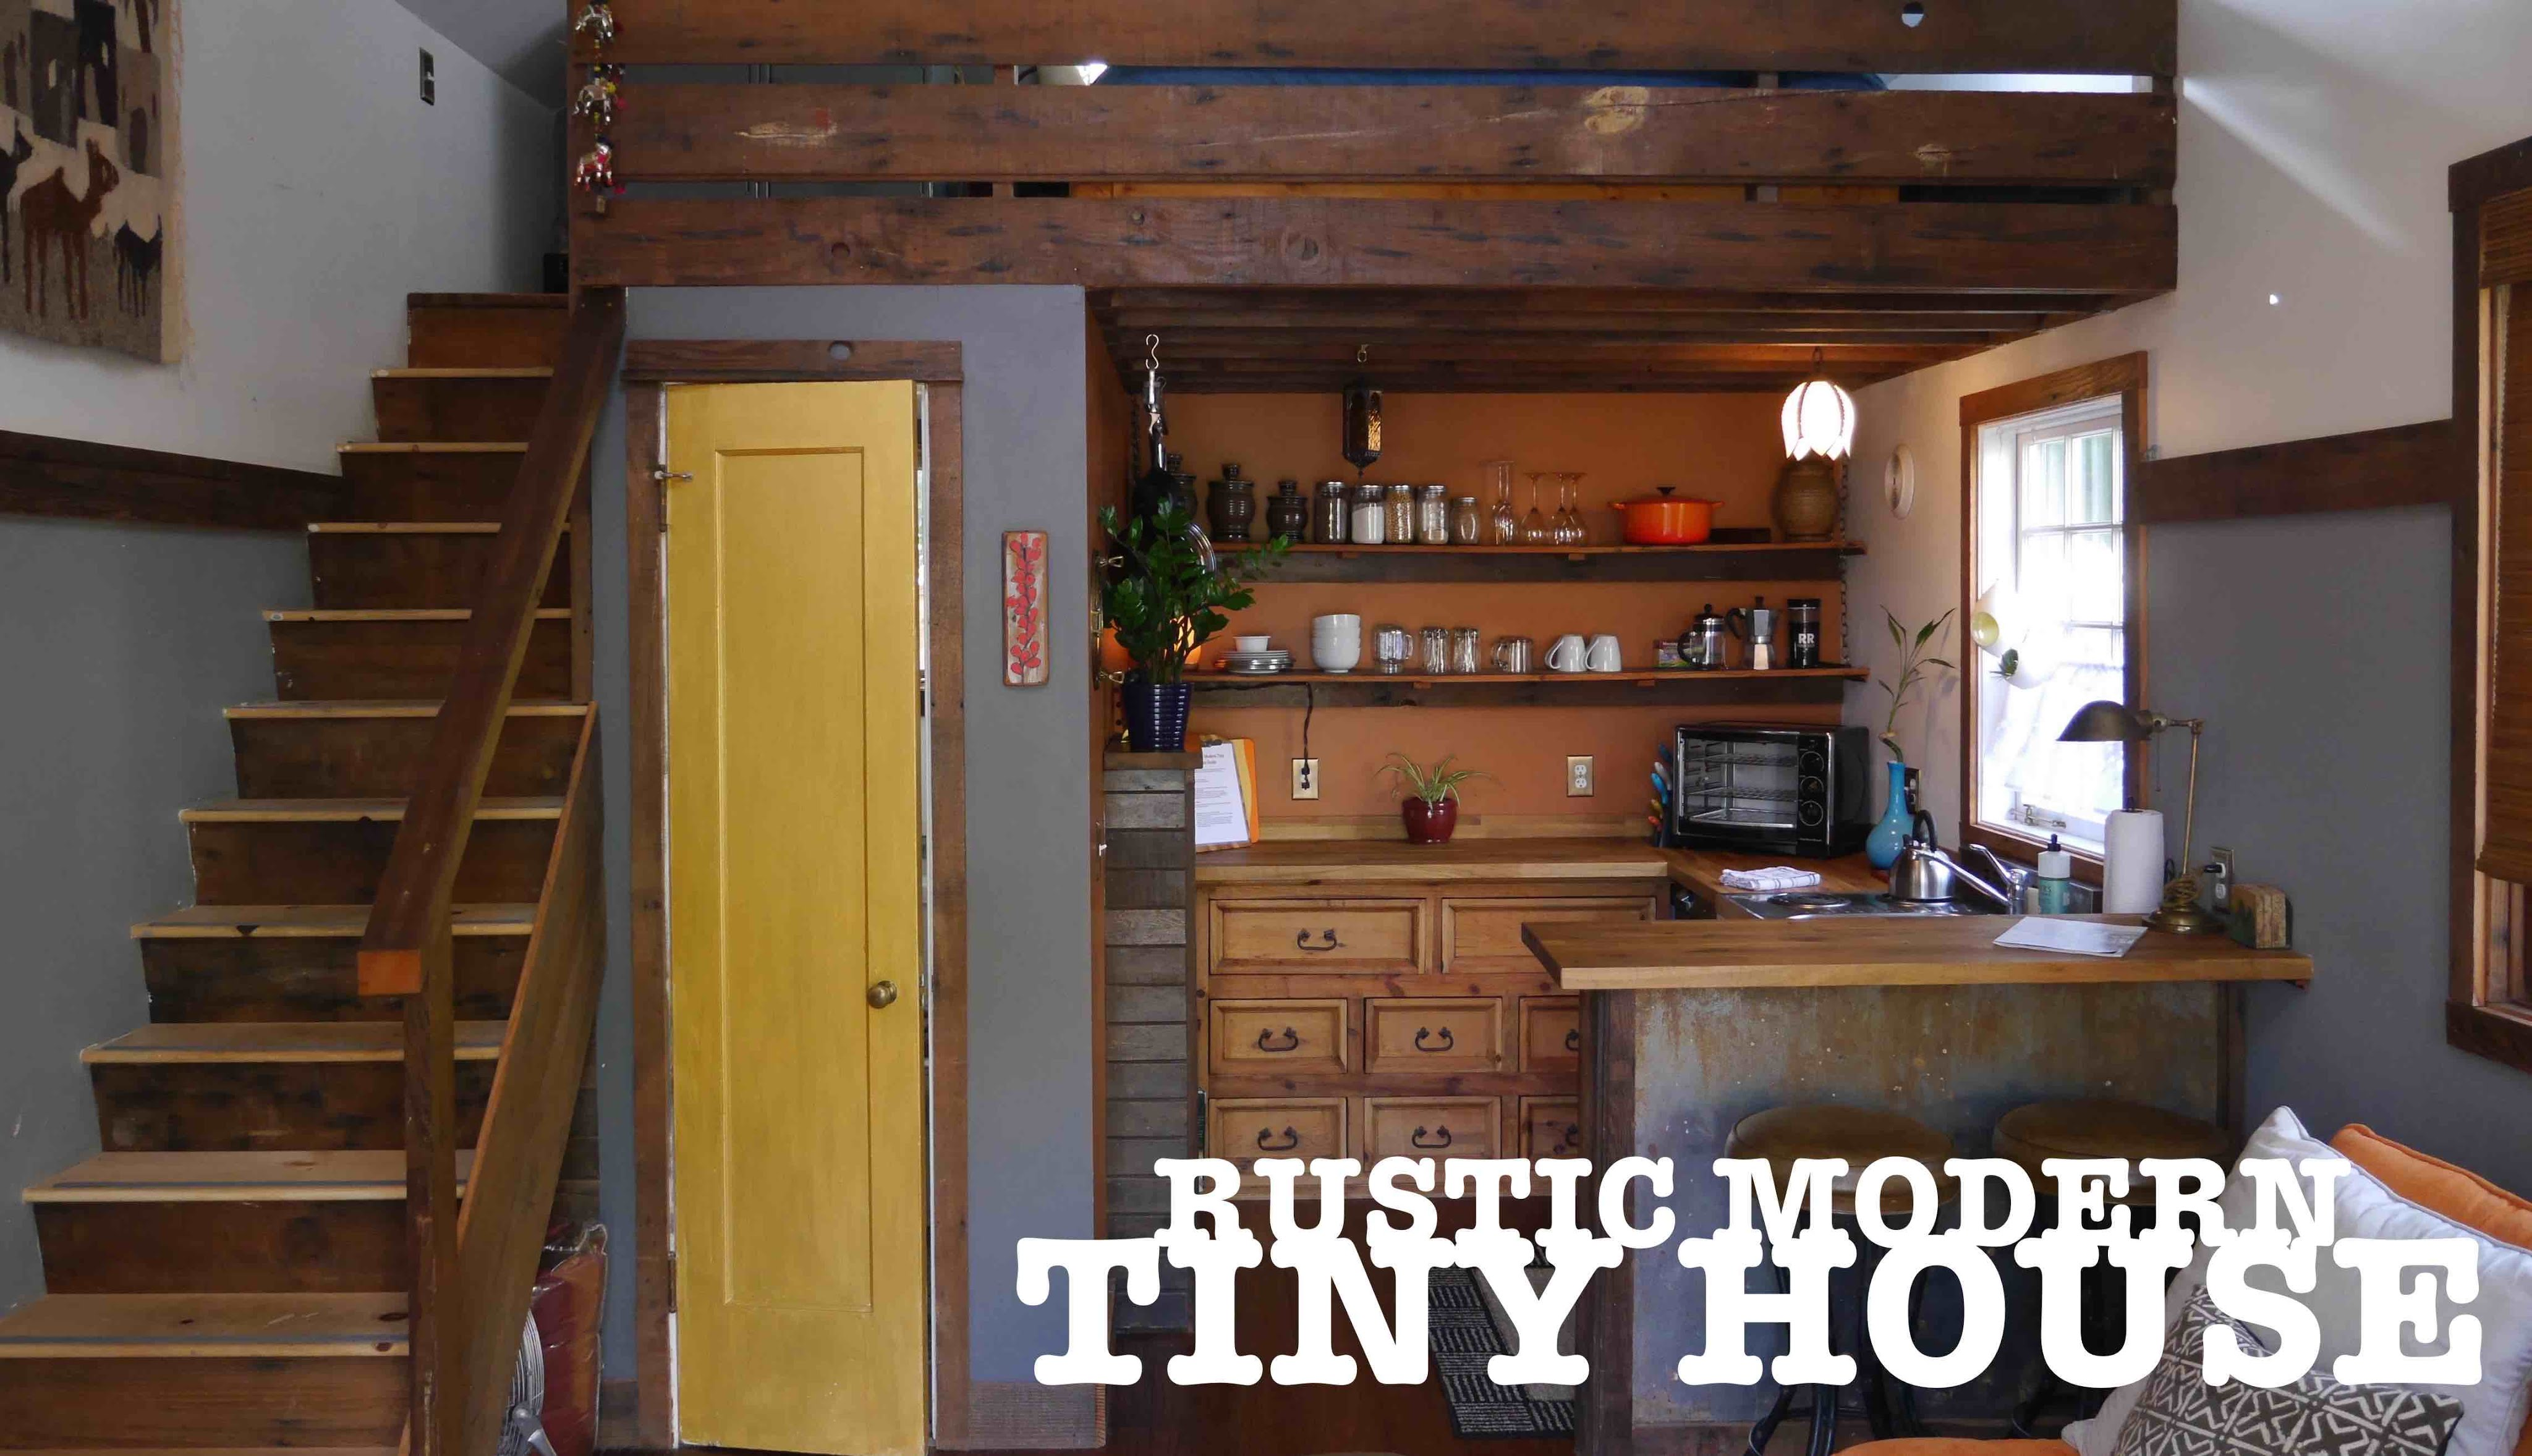 Garage turned into a TINY HOUSE The Rustic Modern in